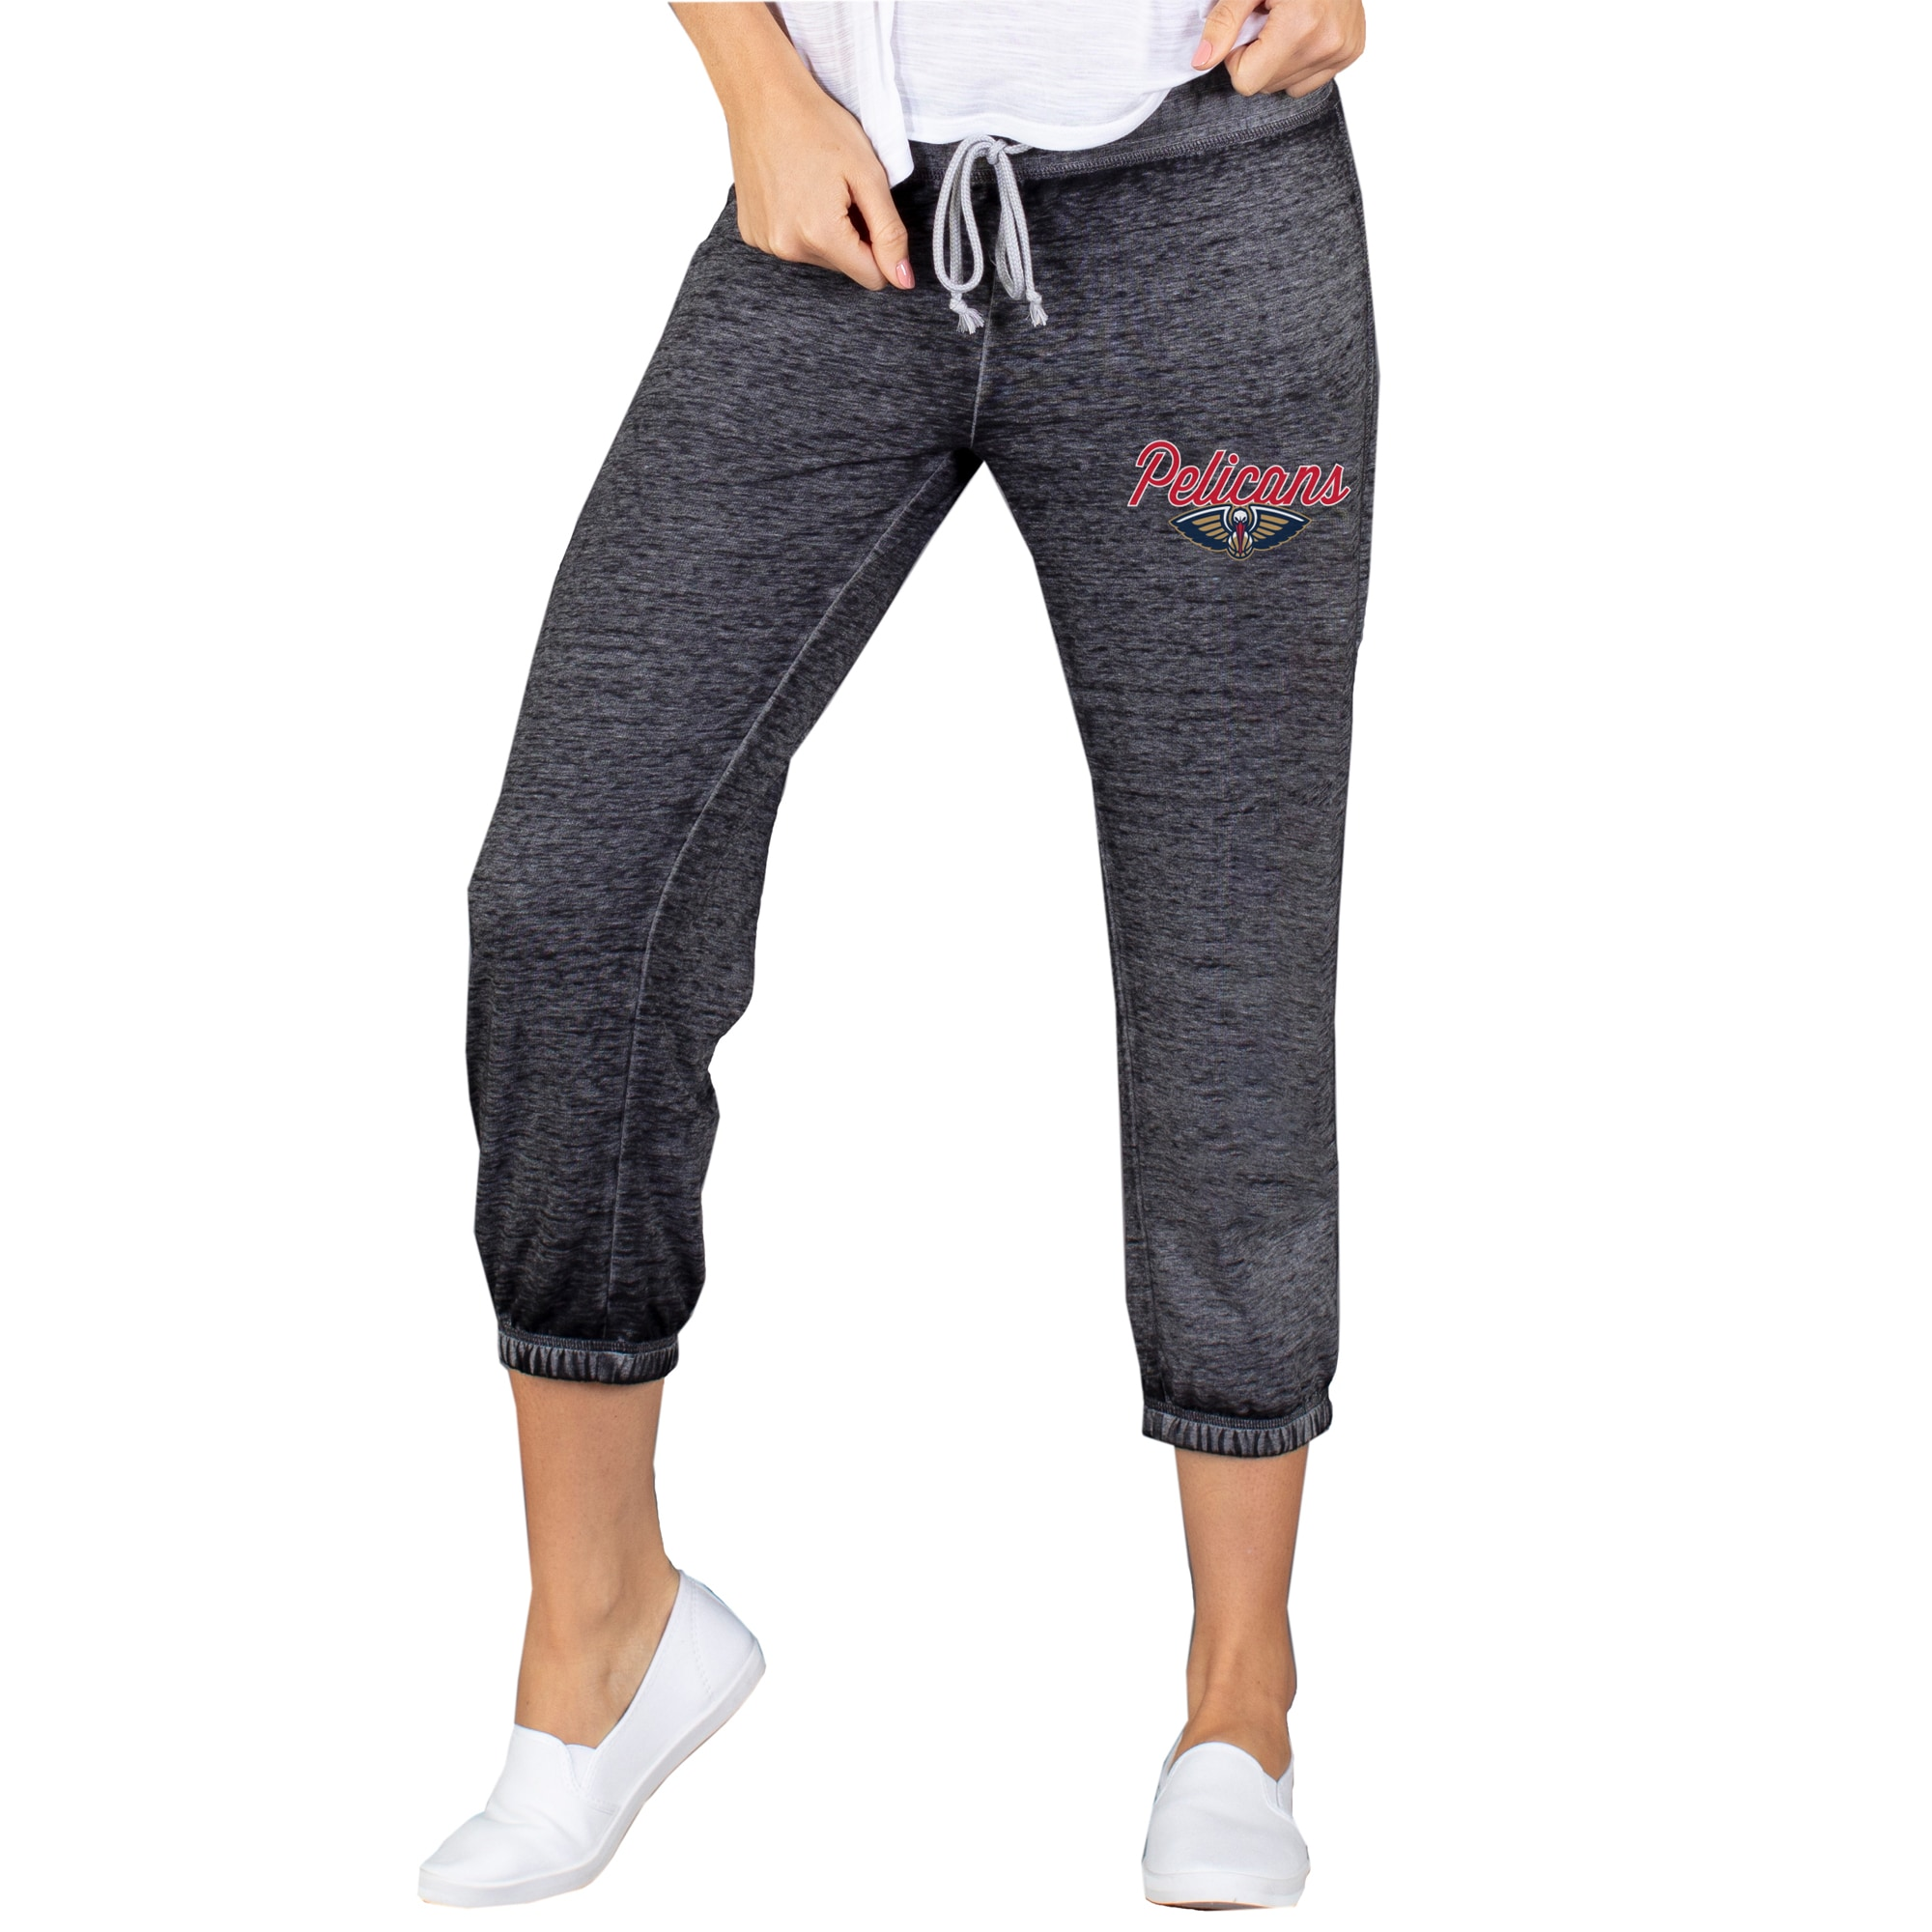 New Orleans Pelicans Concepts Sport Women's Capri Knit Lounge Pants - Charcoal